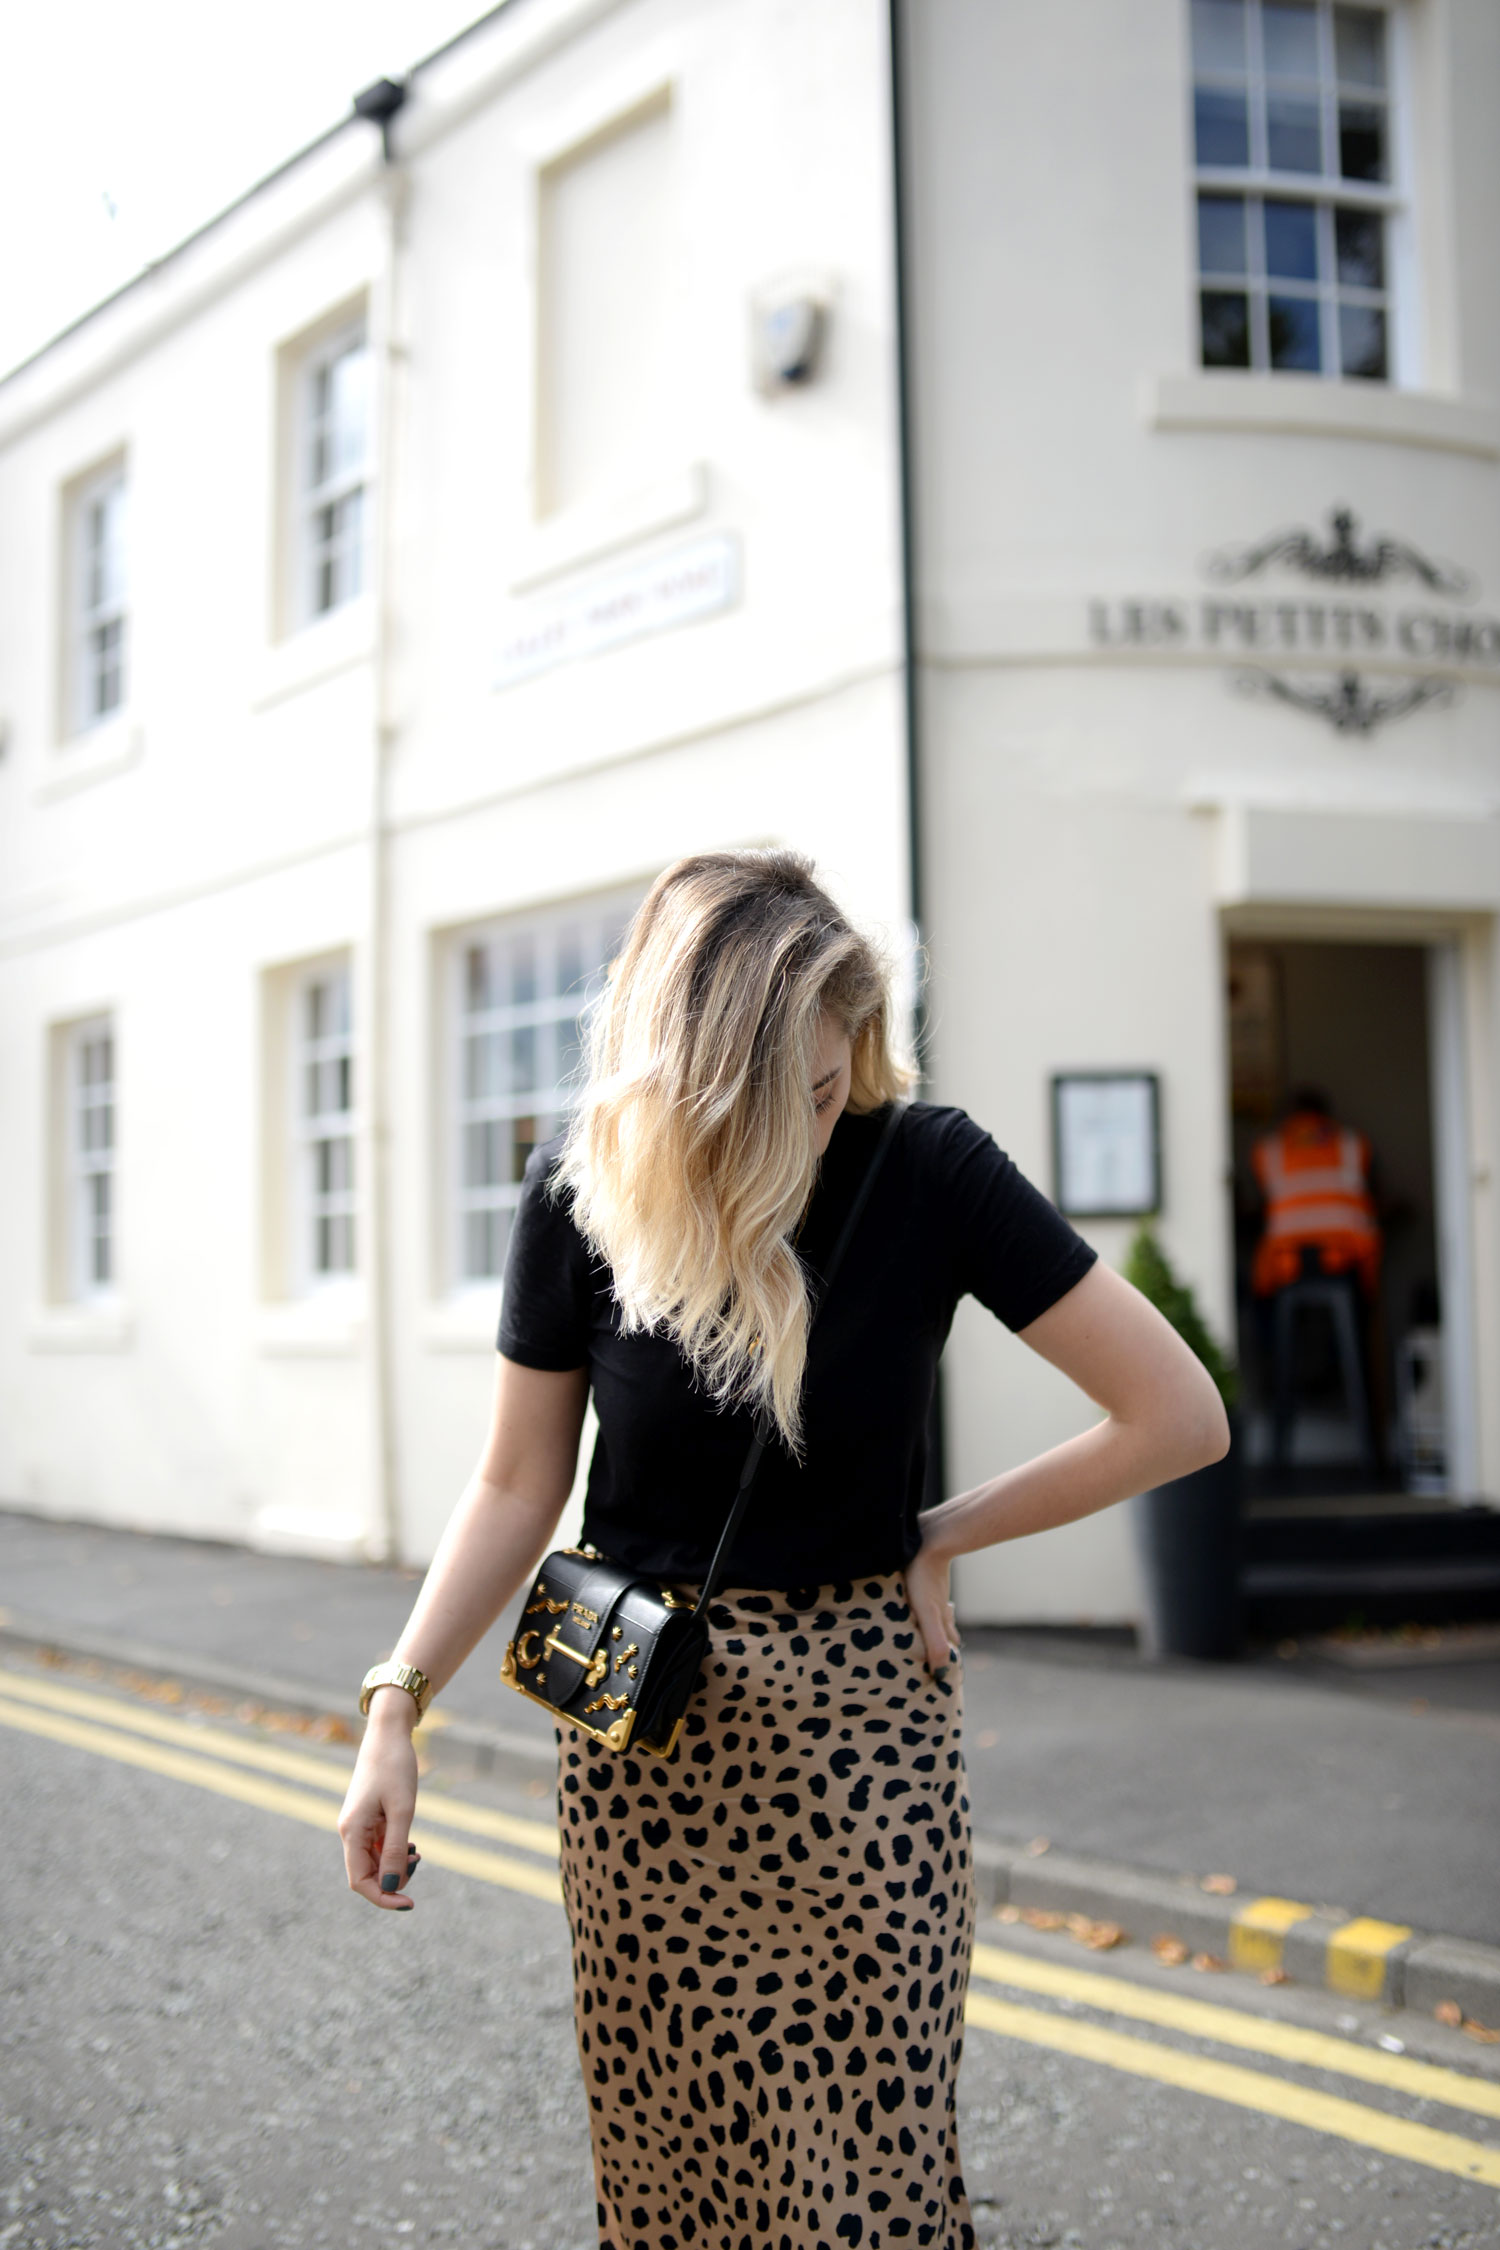 realisation-par-naomi-wild-thing-leopard-silk-skirt-prada-cahier-astrology-bag-11